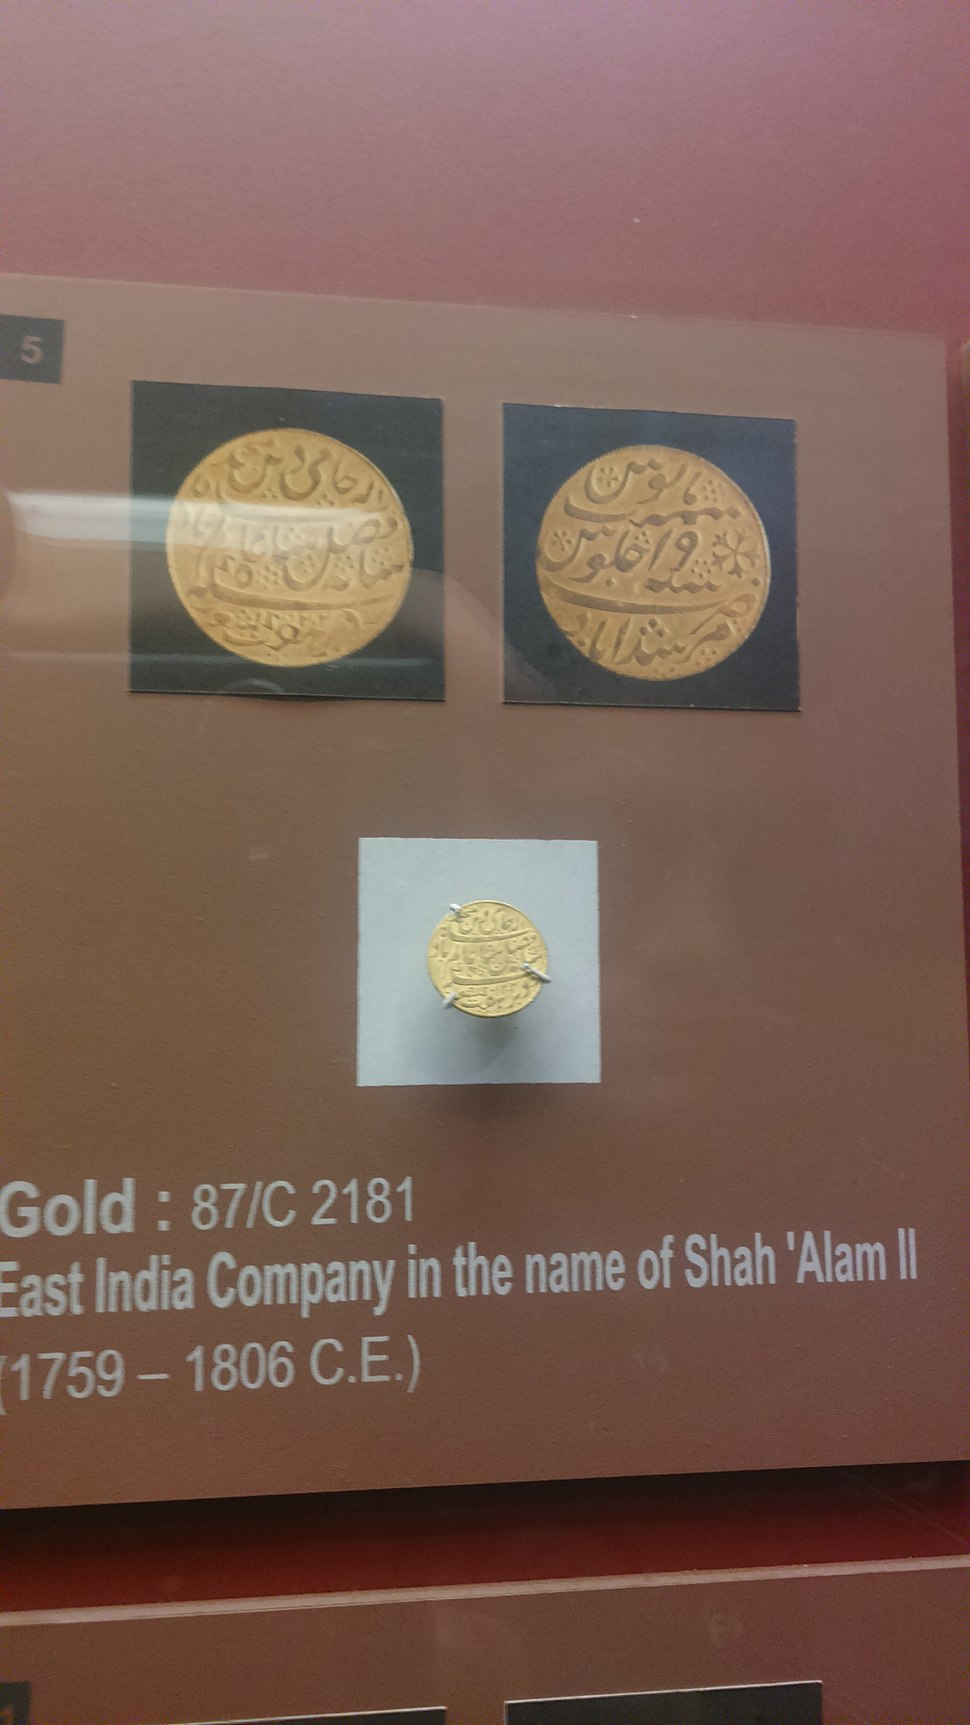 Coins issued by East India Company during reign of Shah Alam II, Indian Museum, Kolkata